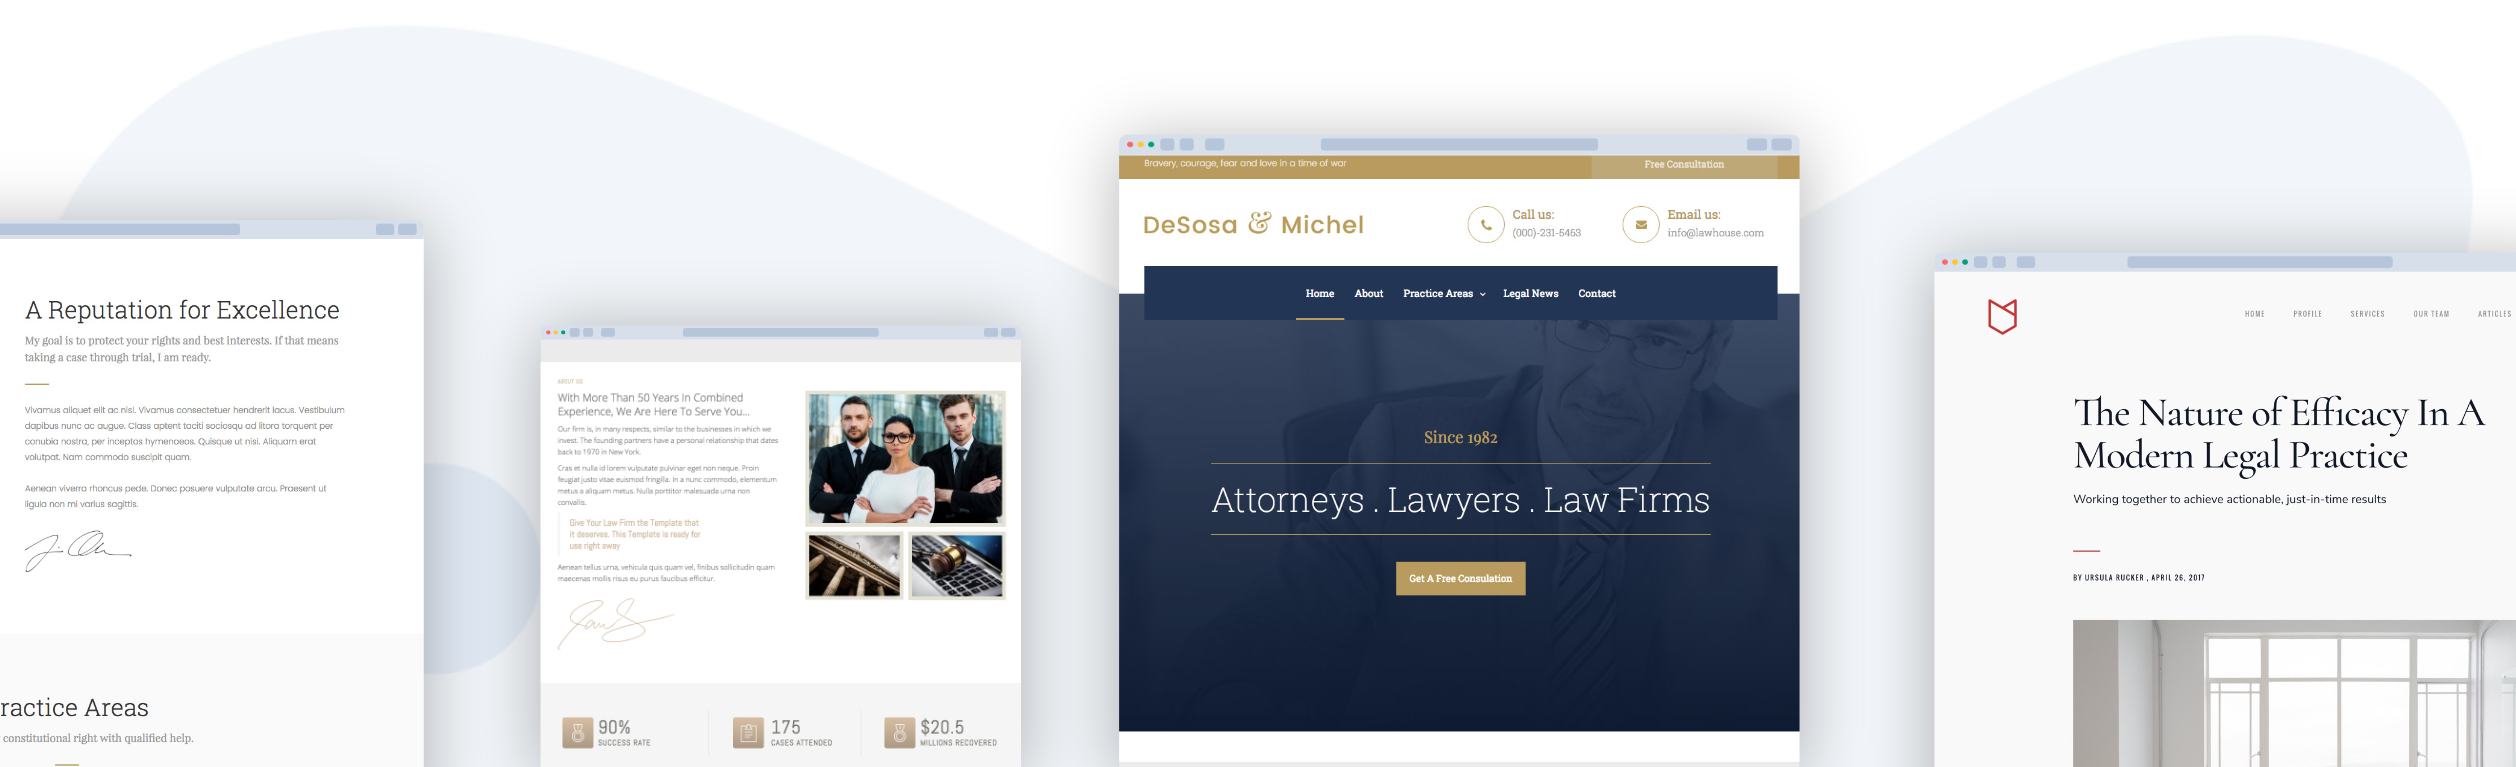 Examples of law firm websites